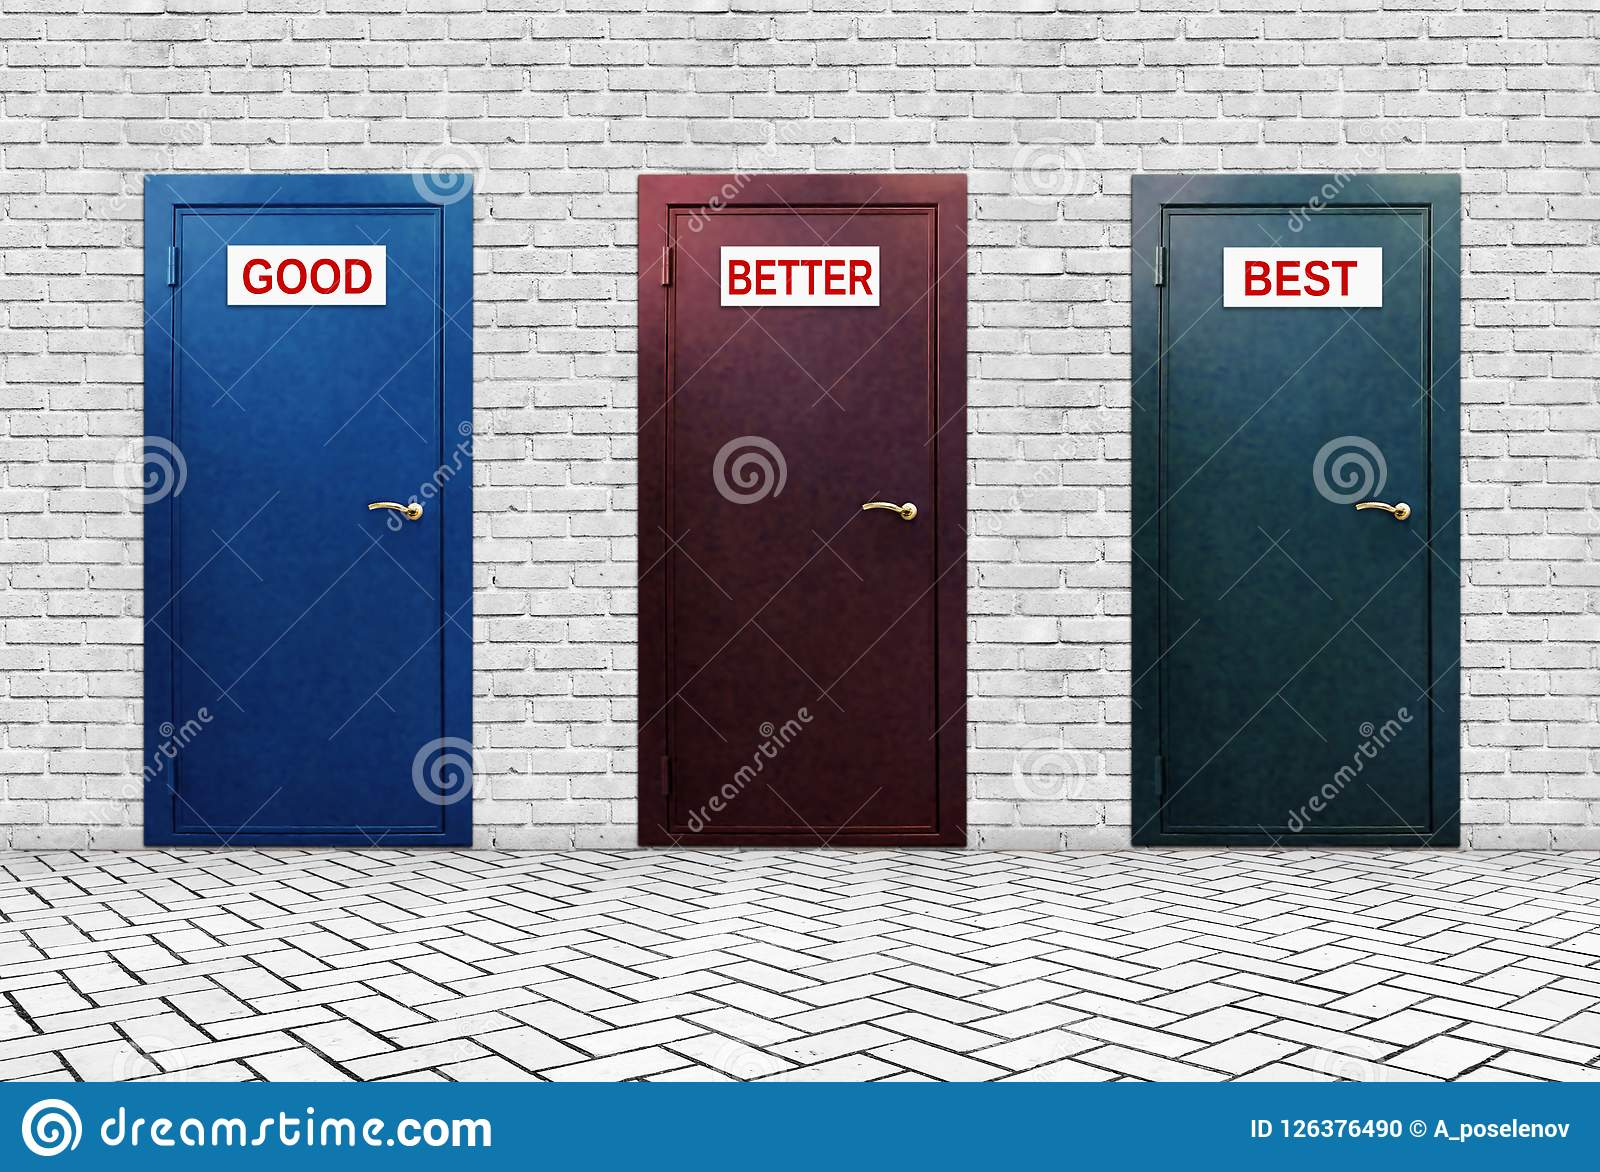 Three doors for Good Better and Best